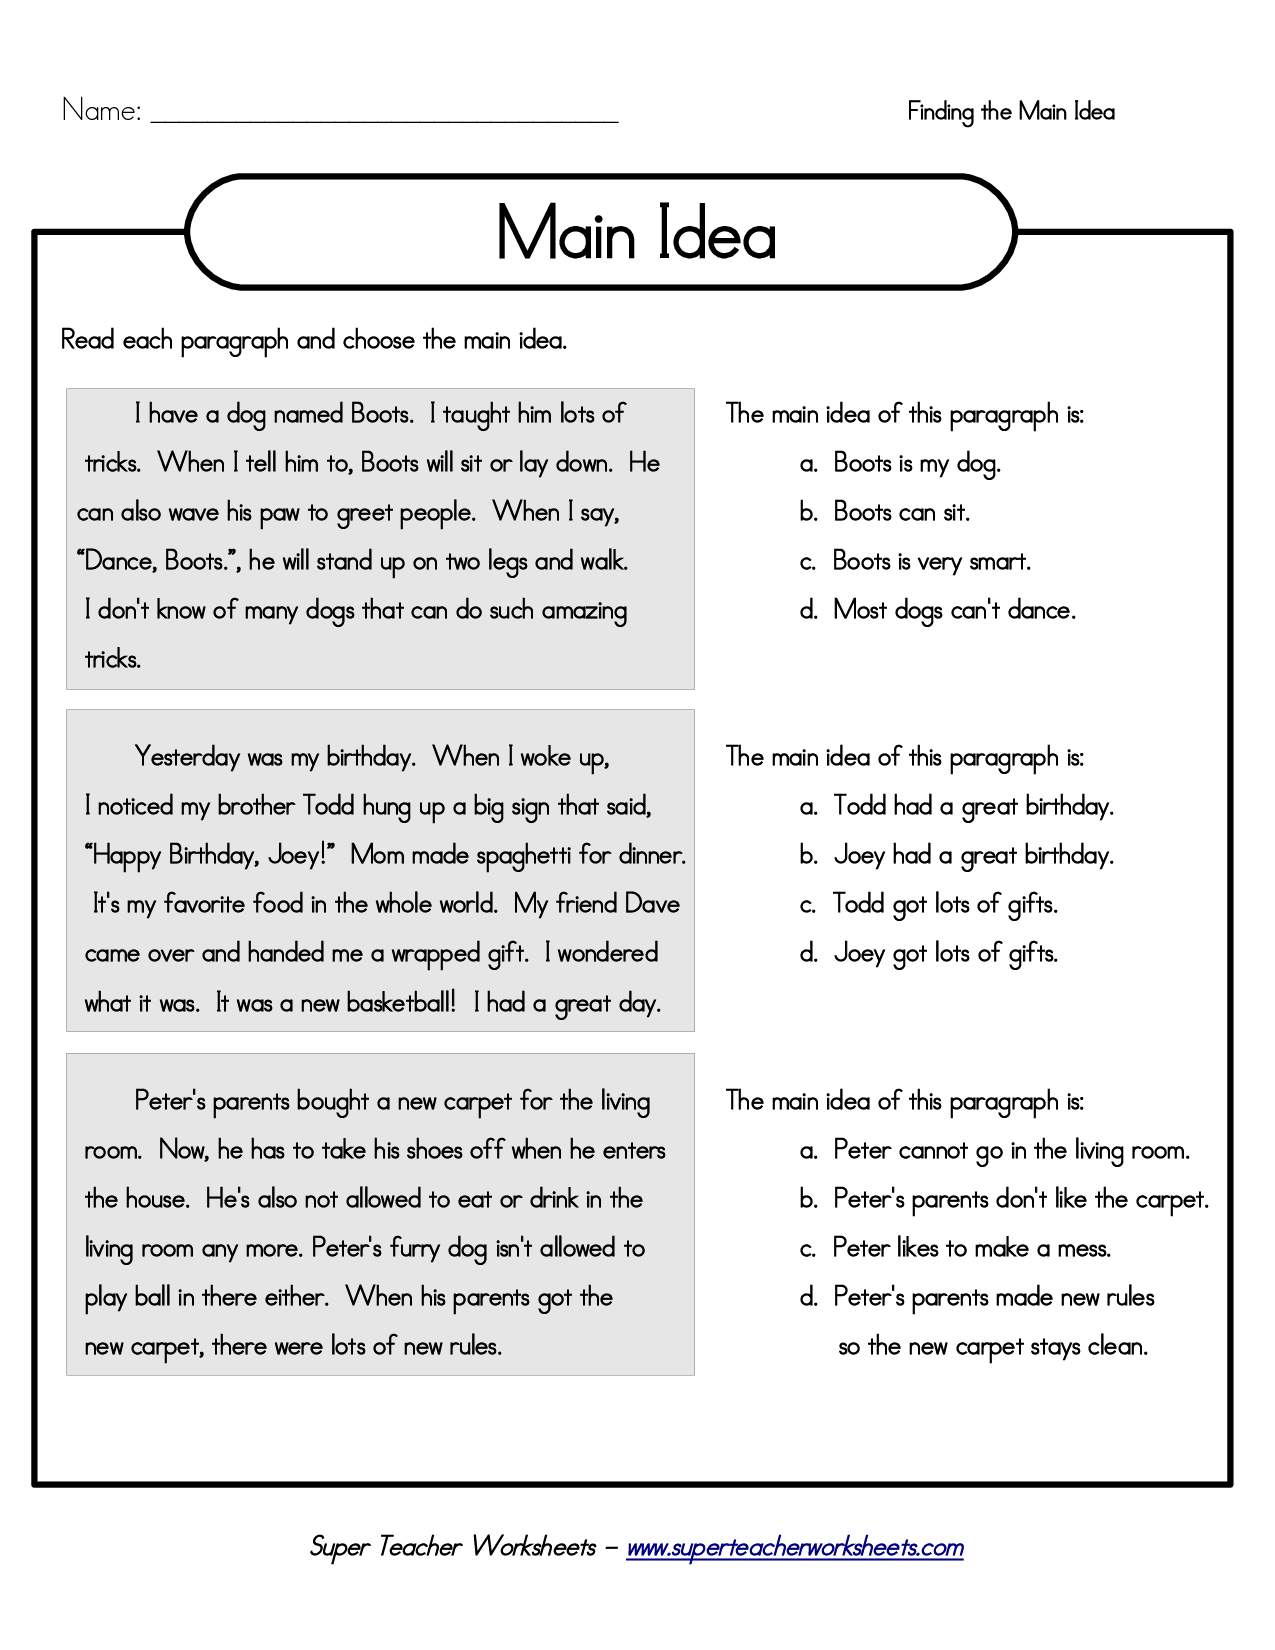 Super Teacher Worksheets Main Idea And Details | Super Teacher ...